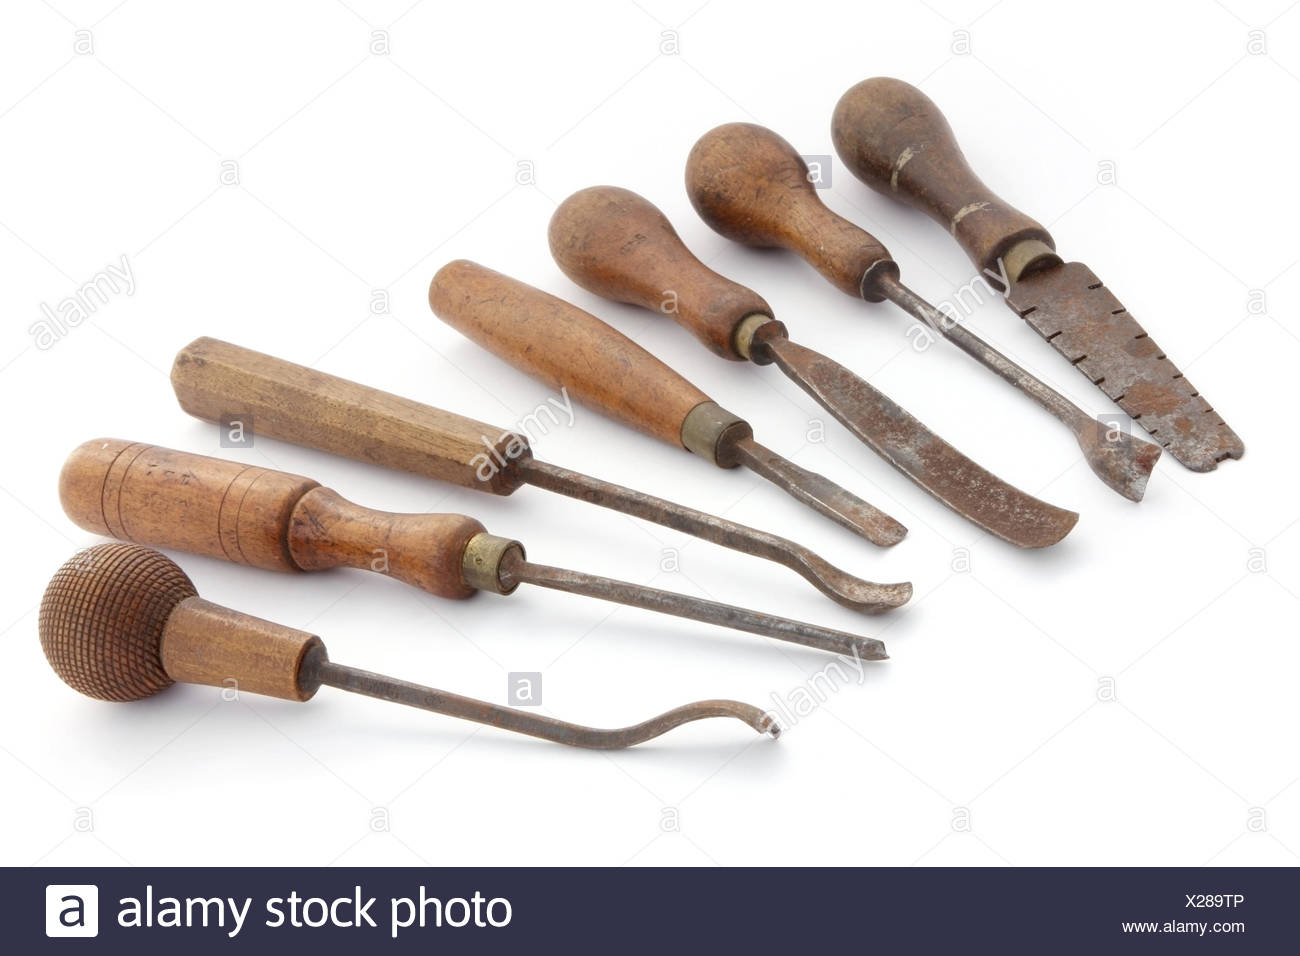 Woodworking Tools Stock Photos & Woodworking Tools Stock Images - Alamy